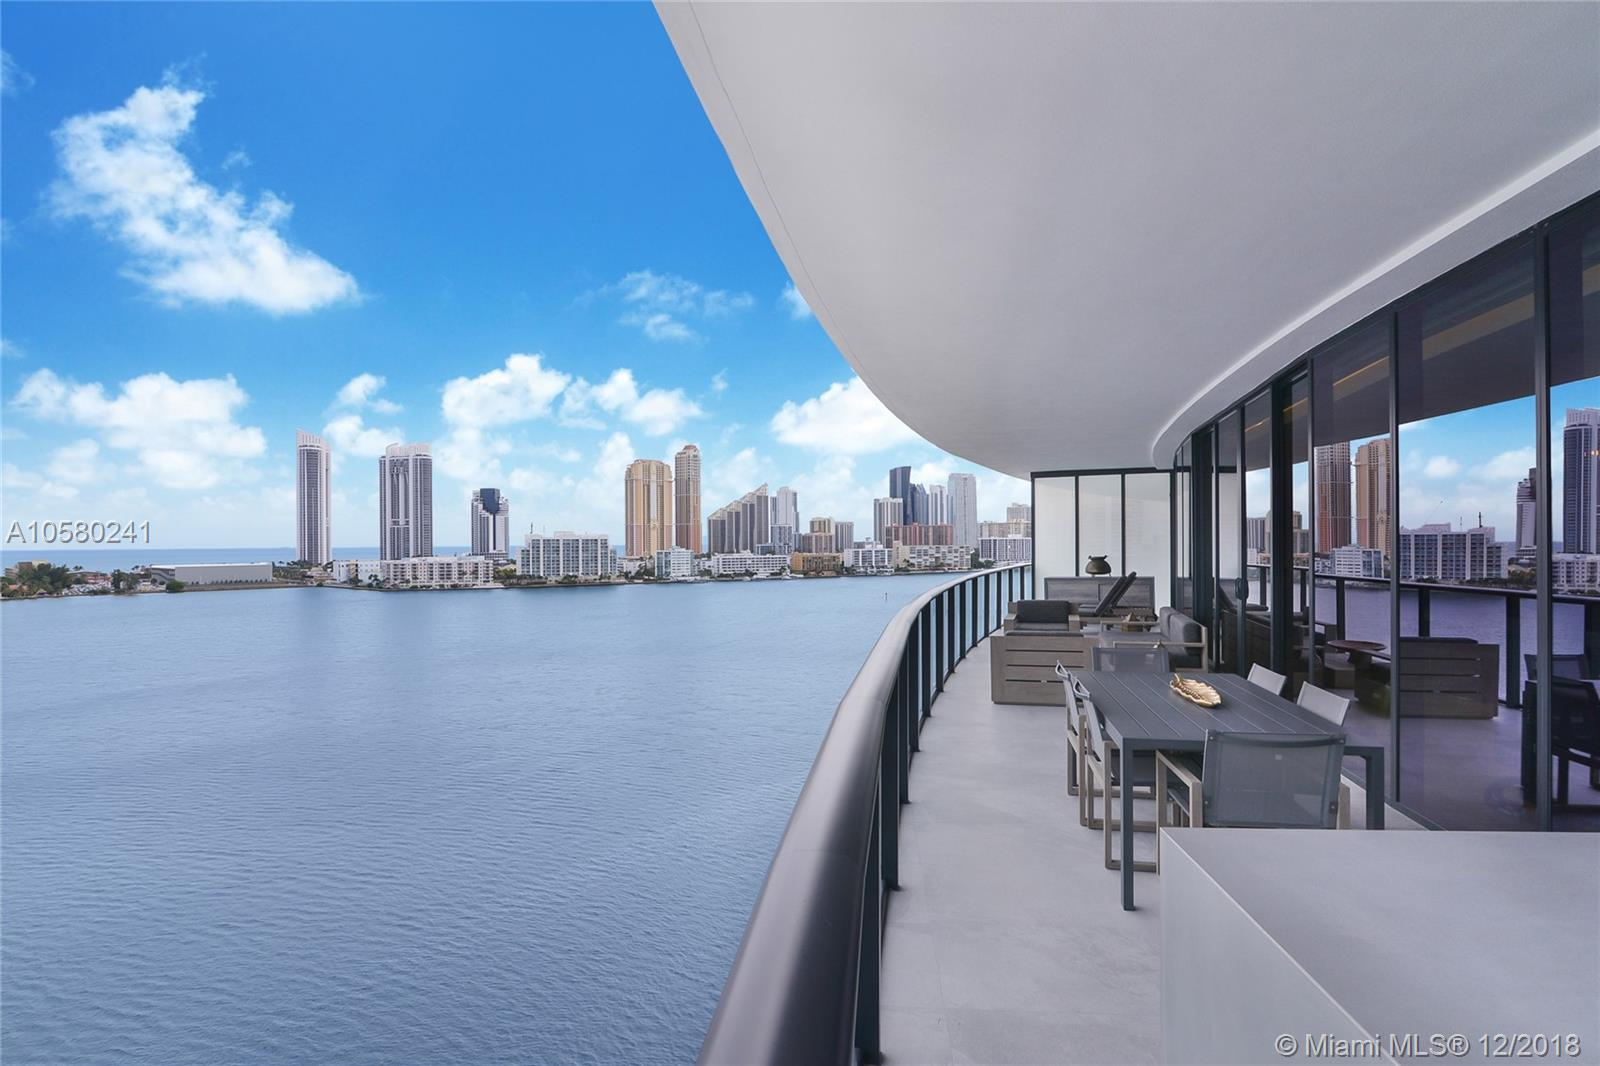 BEAUTIFUL FURNISHED AND DECORATED UNIT AT PRESTIGIOUS PRIVE IN AVENTURA. 2 BED, 3.5 BATH, MAIDS QUARTER, OFFICE, OVER SIZED BALCONIES WITH BBQ SUMMER KITCHEN AND PANORAMIC OCEAN AND INTRACOASTAL VIEWS, WOOD AND MARBLE FLOORING, CUSTOM EUROPEAN KITCHEN WITH MIELE APPLIANCES, PRIVATE FOYER ELEVATOR, DECORATOR FINISHED AND FURNISHED, NICEST UNIT IN THE BUILDING. PRIVE HAS A PRIVATE MARINA WITH AVAILABLE DOCKS, RESTAURANTE, WINE/CIGAR ROOM, SOCIAL ROOM, TENNIS COURT, POOL, SPA & GYM, GUEST SUITES, 24 HOUR SECURITY, VALET AND MUCH MORE. OWNER HAS ALSO FOR SALE A FINISHED & FURNISHED GUEST SUITE. OWNER FINANCING IS AVAILABLE. THIS UNIT IS ALSO AVAILABLE FOR YEARLY RENTAL.